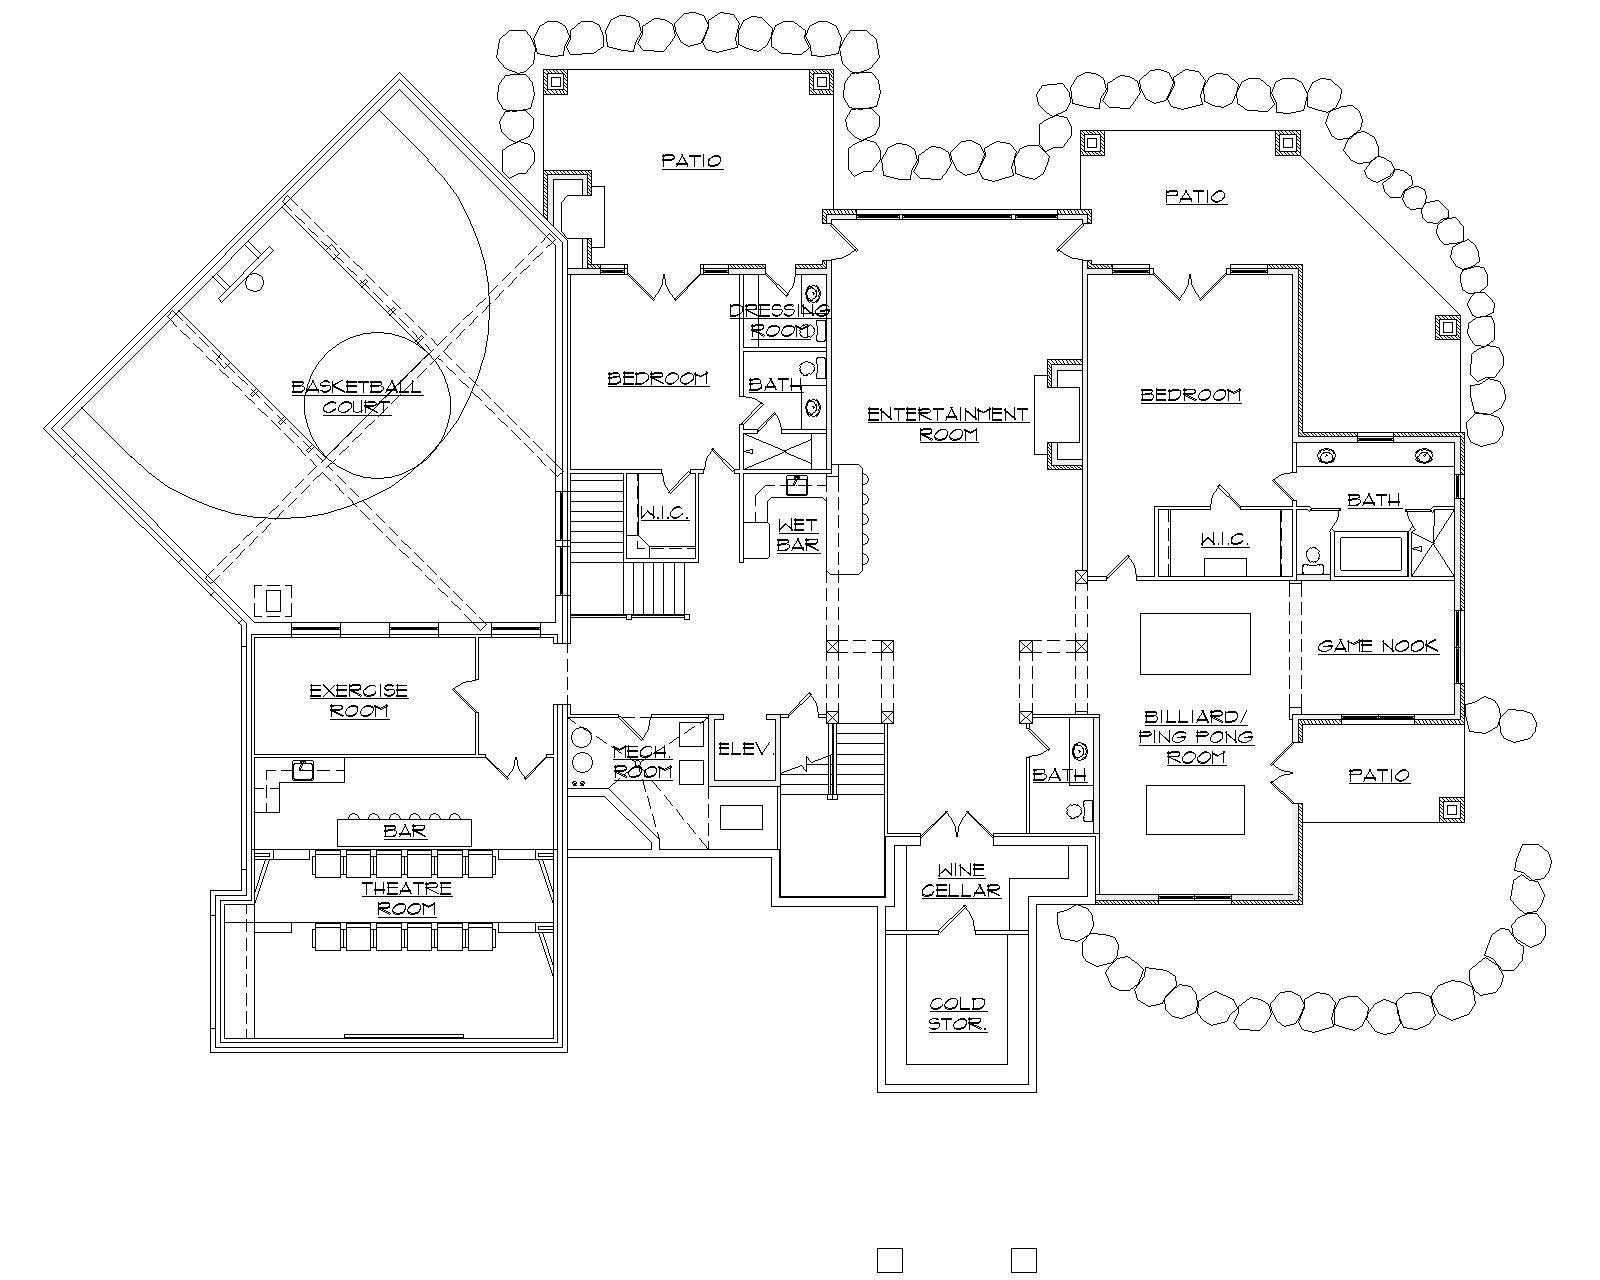 House plans with indoor basketball court how to costs for House plans with indoor sport court